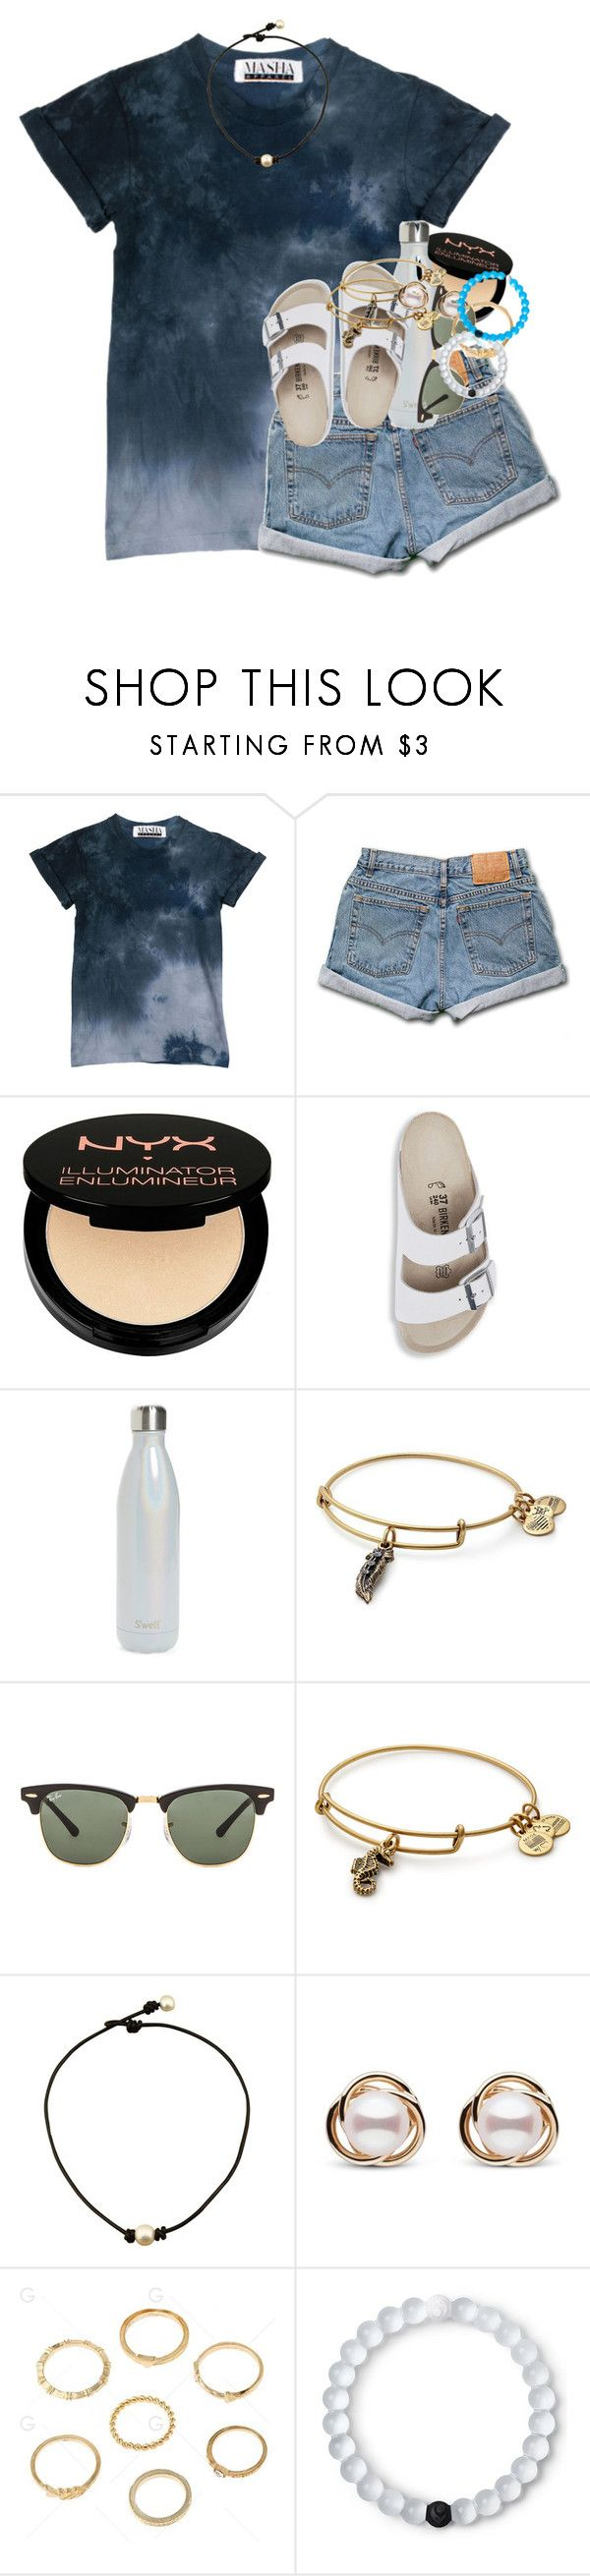 """""""black & blue"""" by emilyandella ❤ liked on Polyvore featuring Levi's, Charlotte Russe, Birkenstock, S'well, Alex and Ani, Ray-Ban, Trilogy and Lokai"""